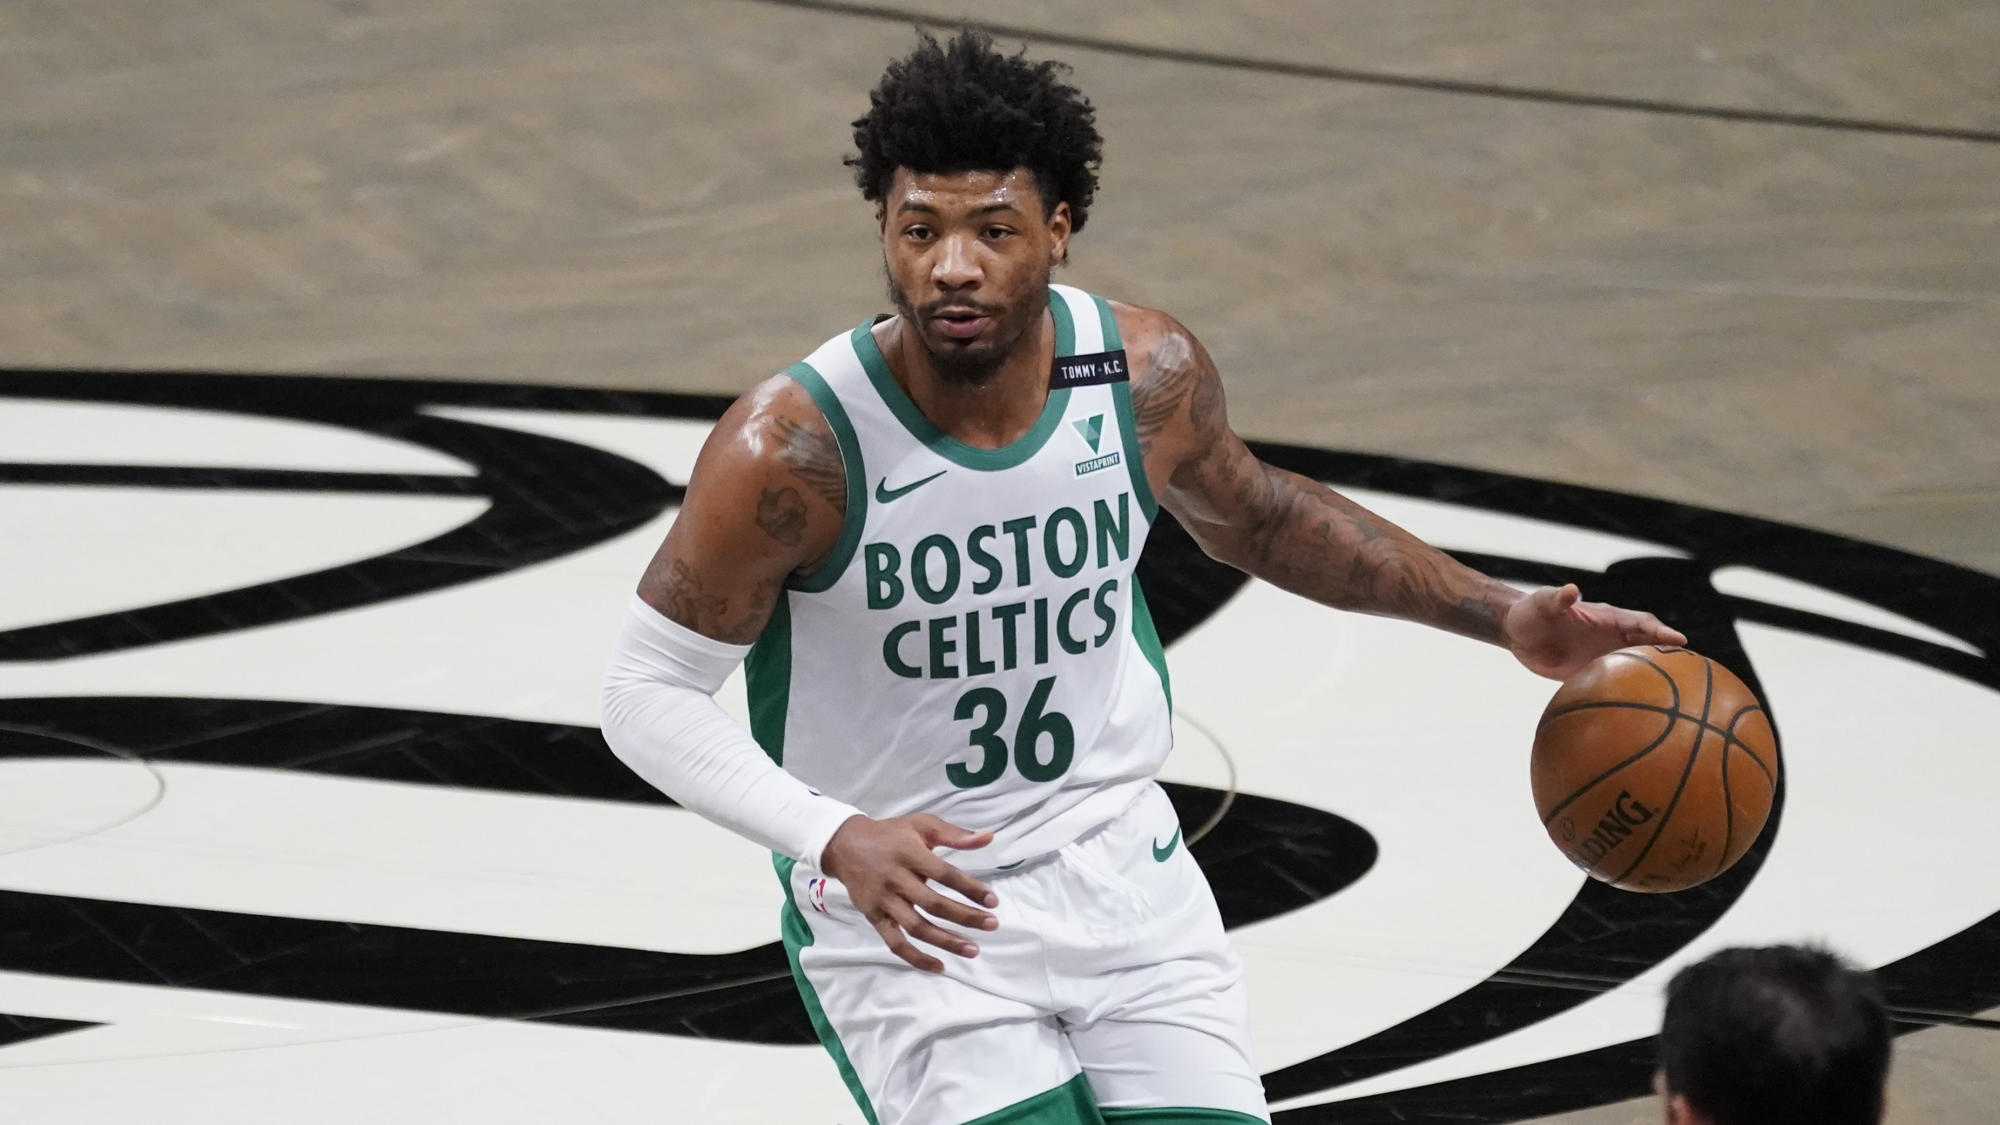 Marcus Smart suspended for threatening official: NBA